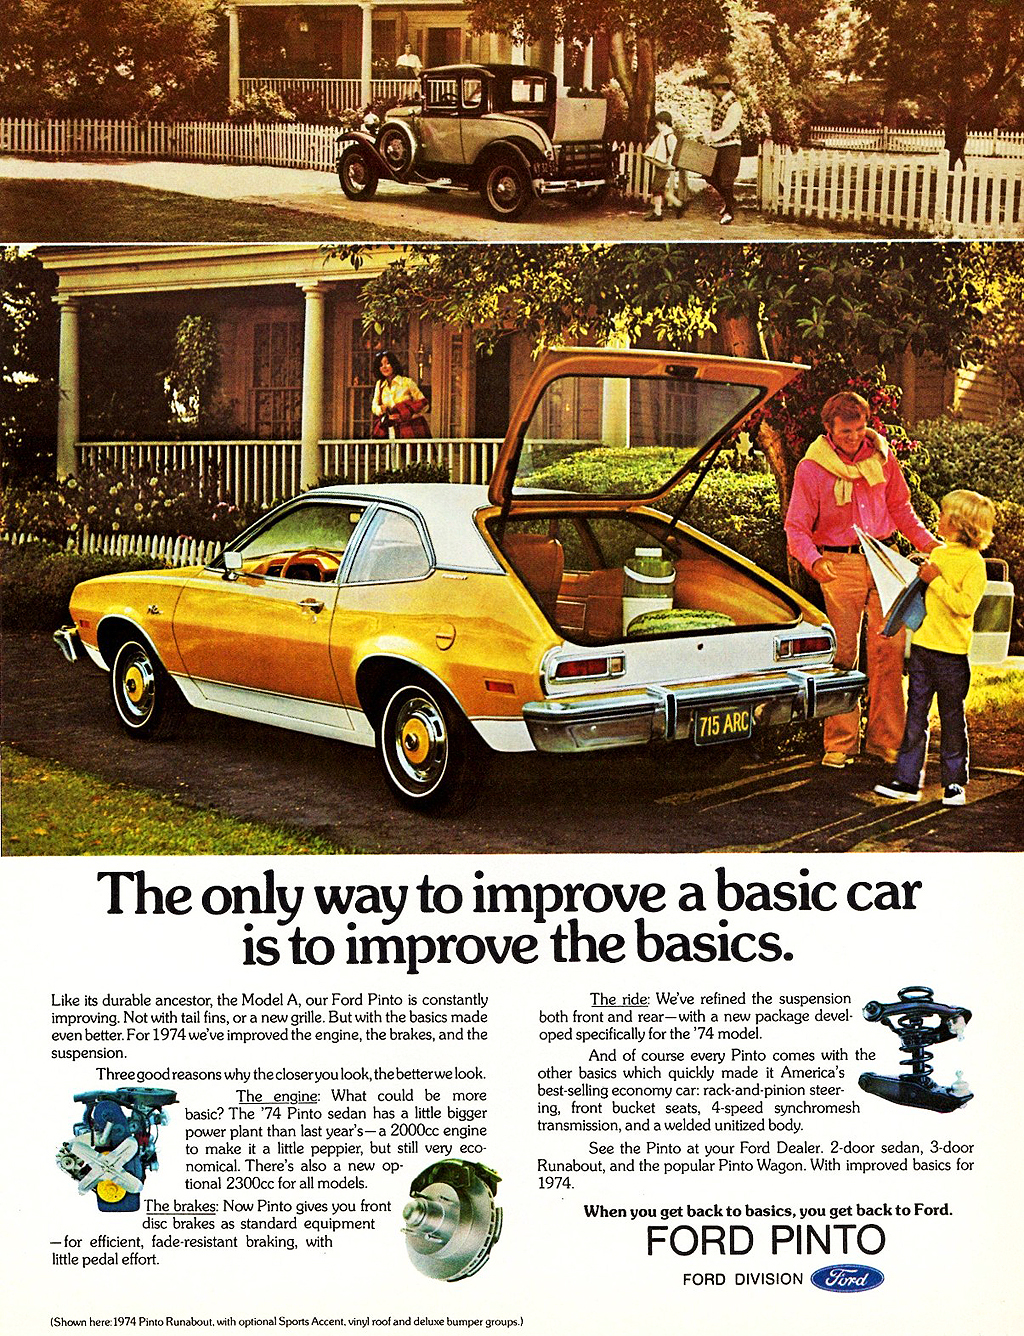 1974 Ford Pinto special edition